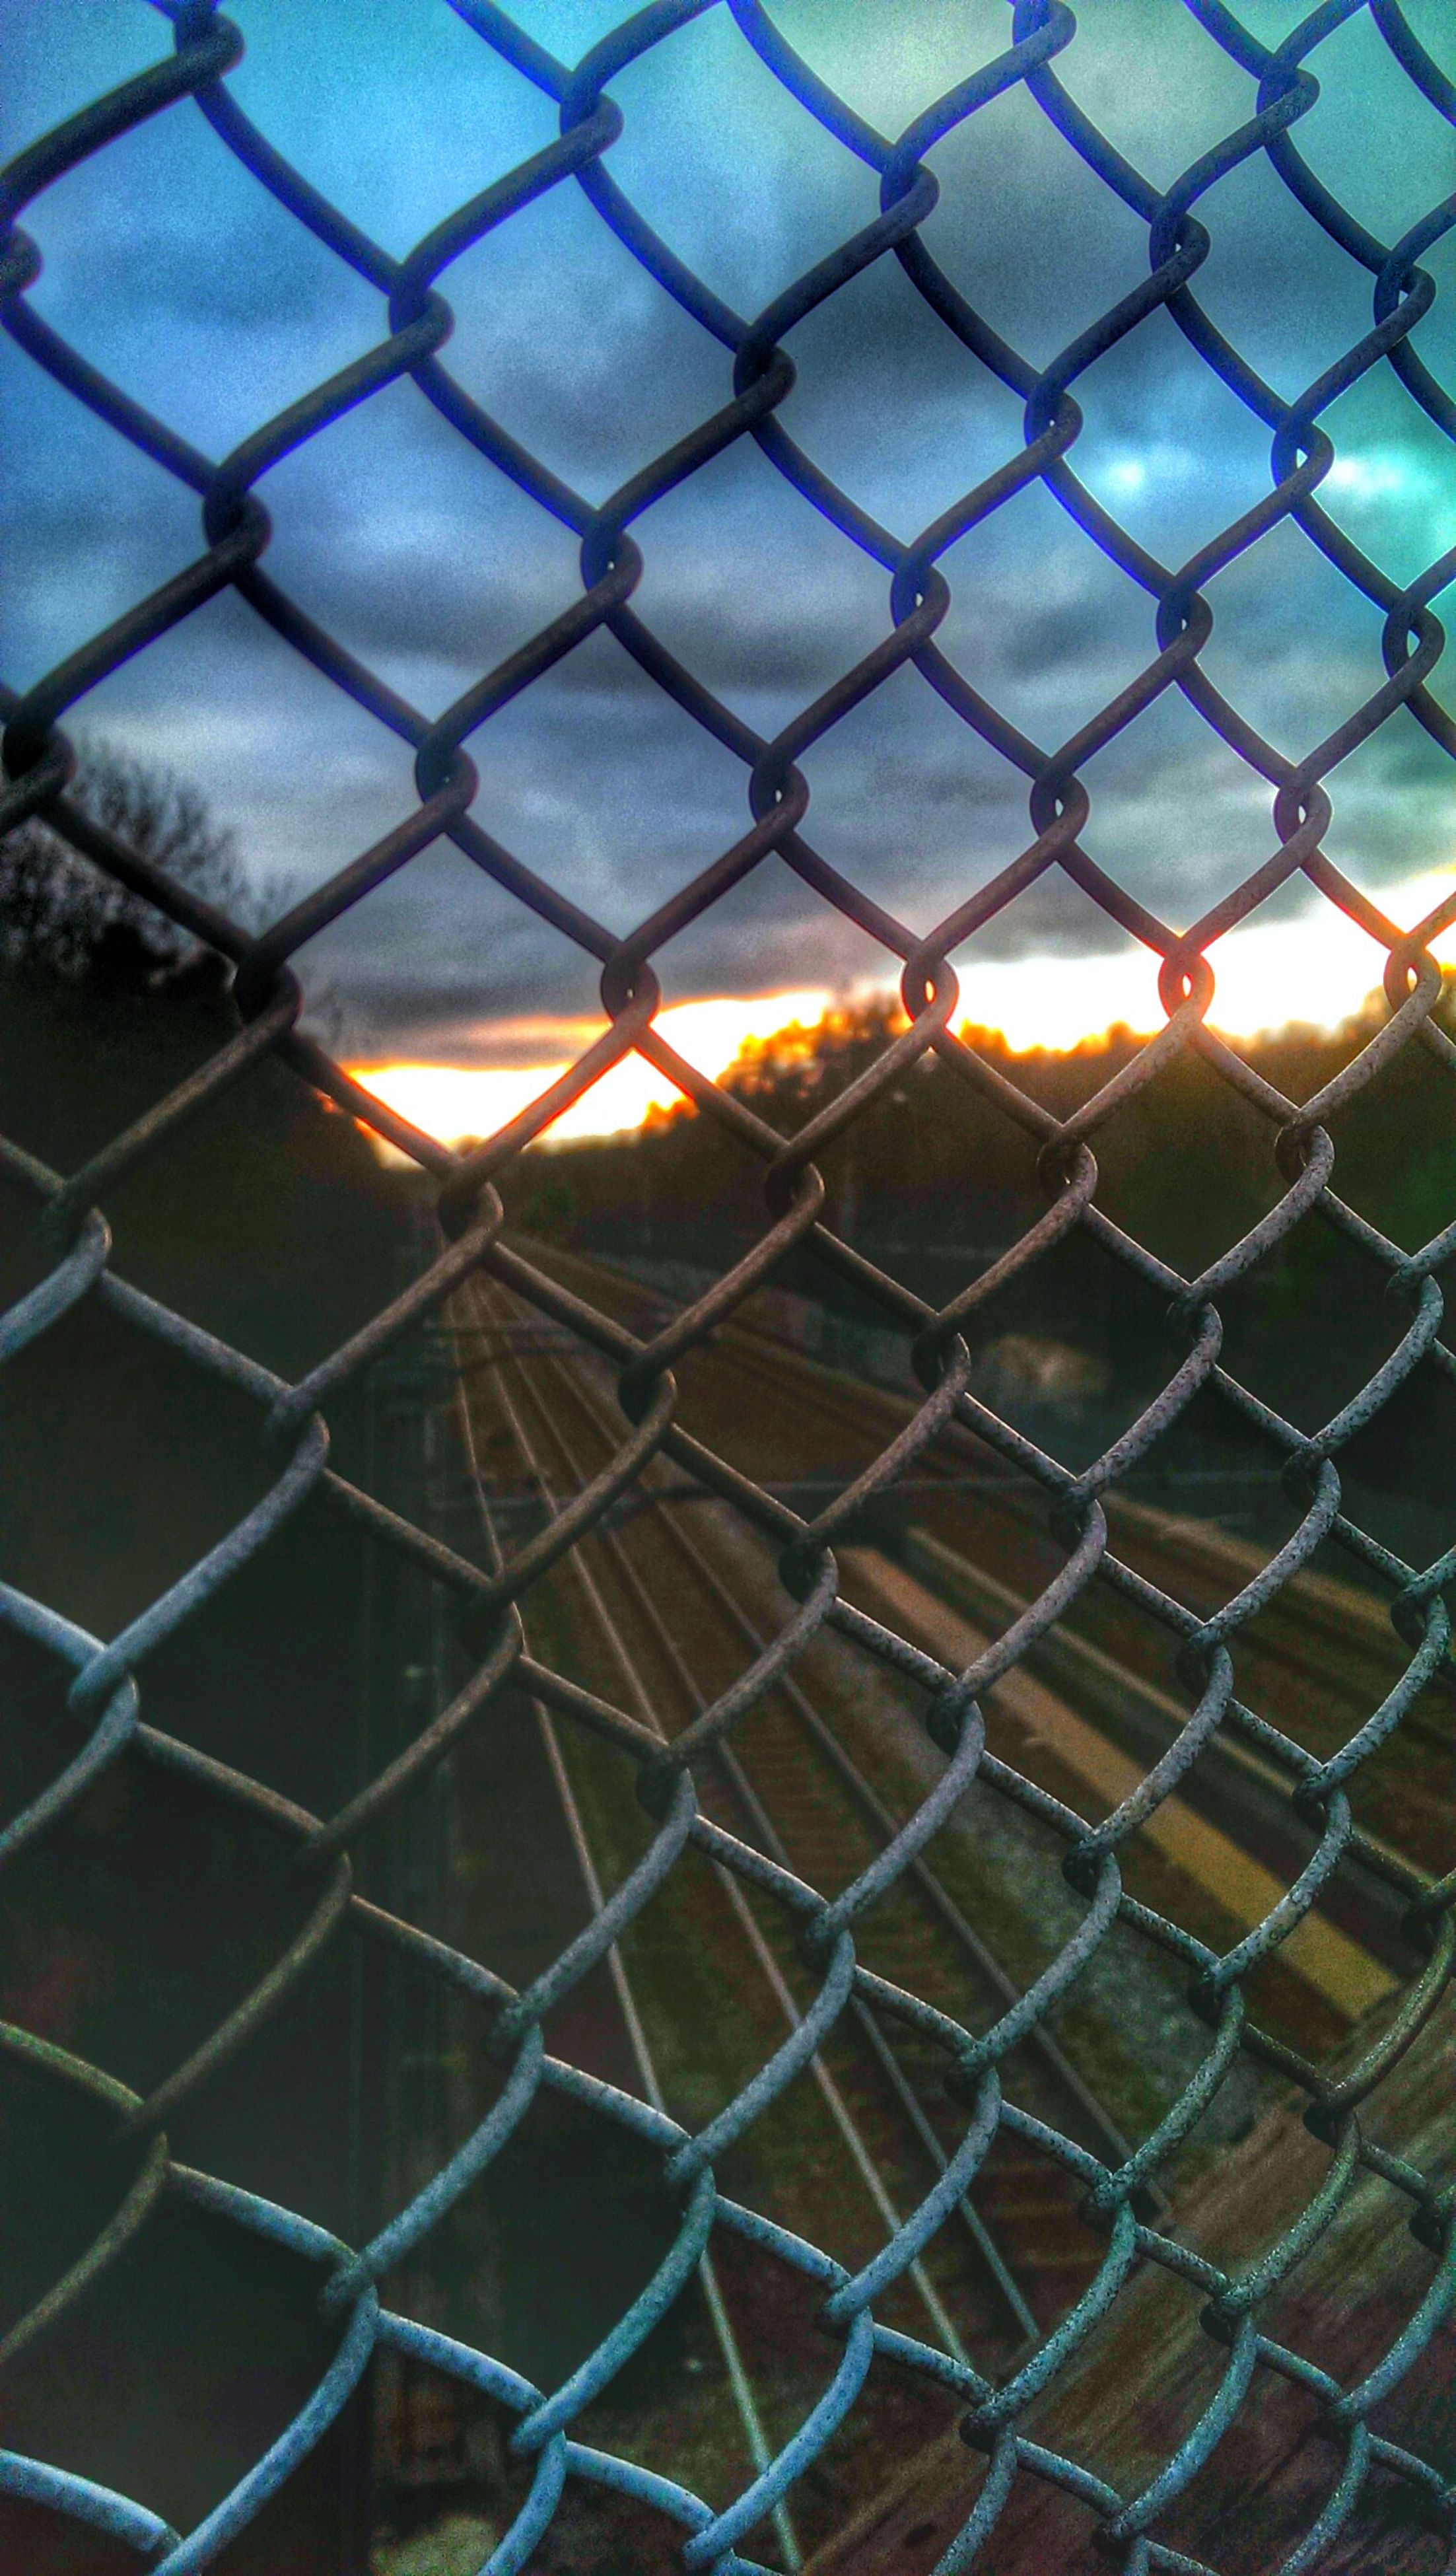 chainlink fence, full frame, fence, backgrounds, protection, safety, pattern, metal, security, metal grate, focus on foreground, no people, metallic, outdoors, close-up, city, day, transportation, water, design